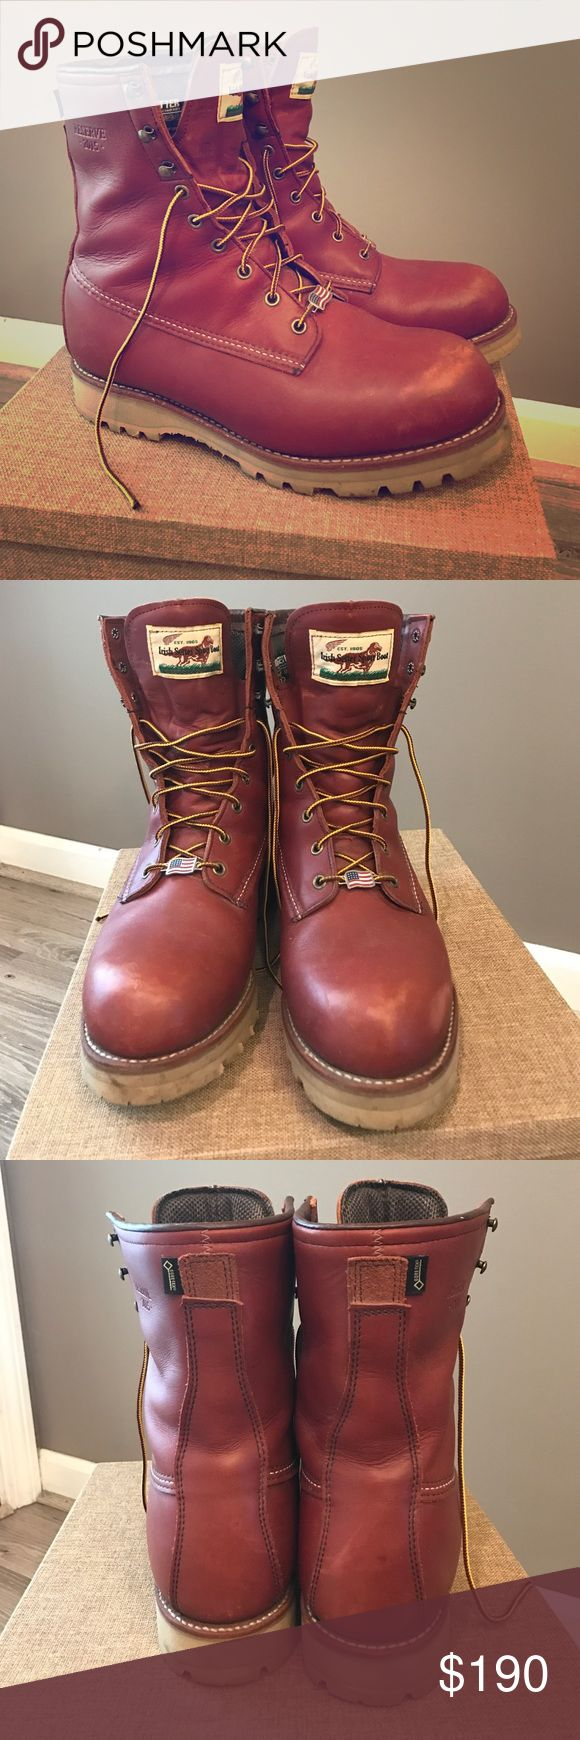 "Irish Setter Reserve 2015 Limited Edition Boots In excellent condition 8"" Boots. Work a handful of times. Style 4806 is an 8"" men's waterproof boot with 400 grams of Thinsulate® Ultra insulation Red Wing Shoes Shoes Boots"